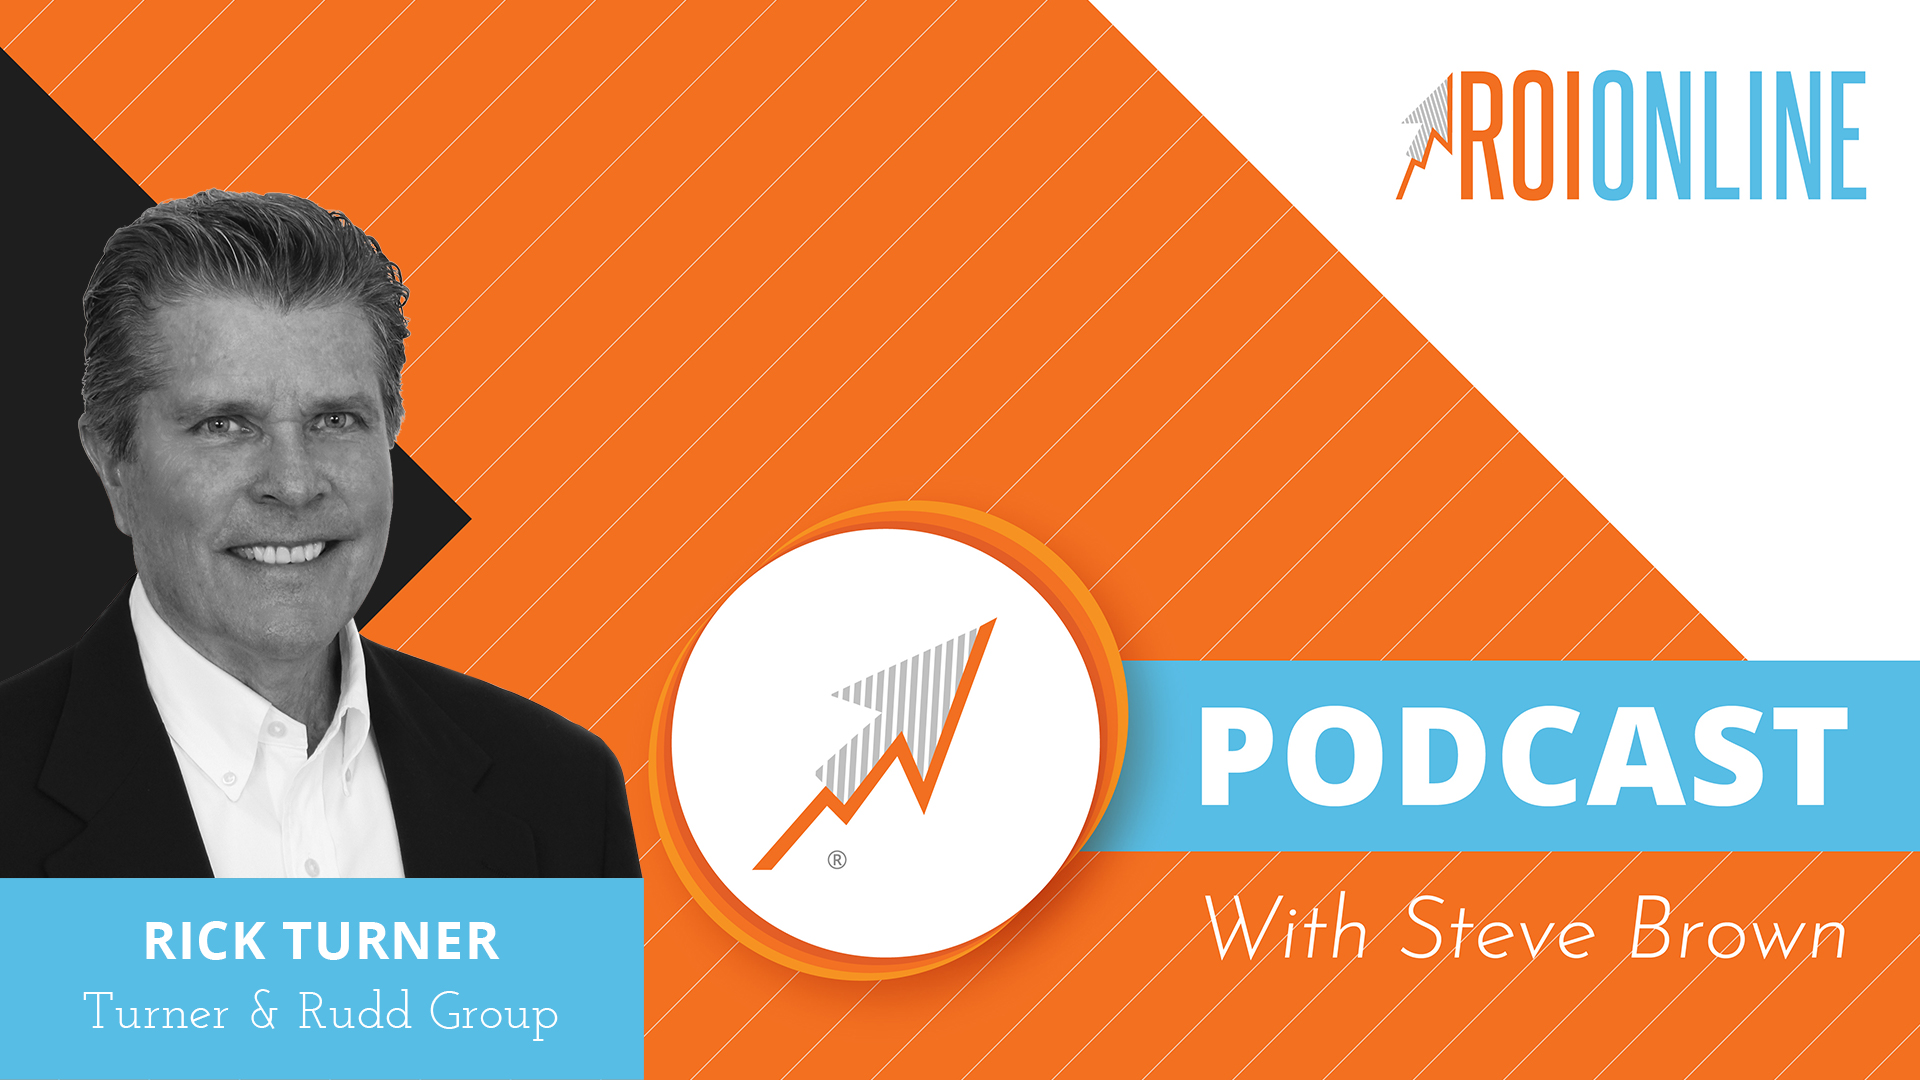 The ROI Online Podcast With Steve Brown - Rick Turner - Turner & Rudd Group